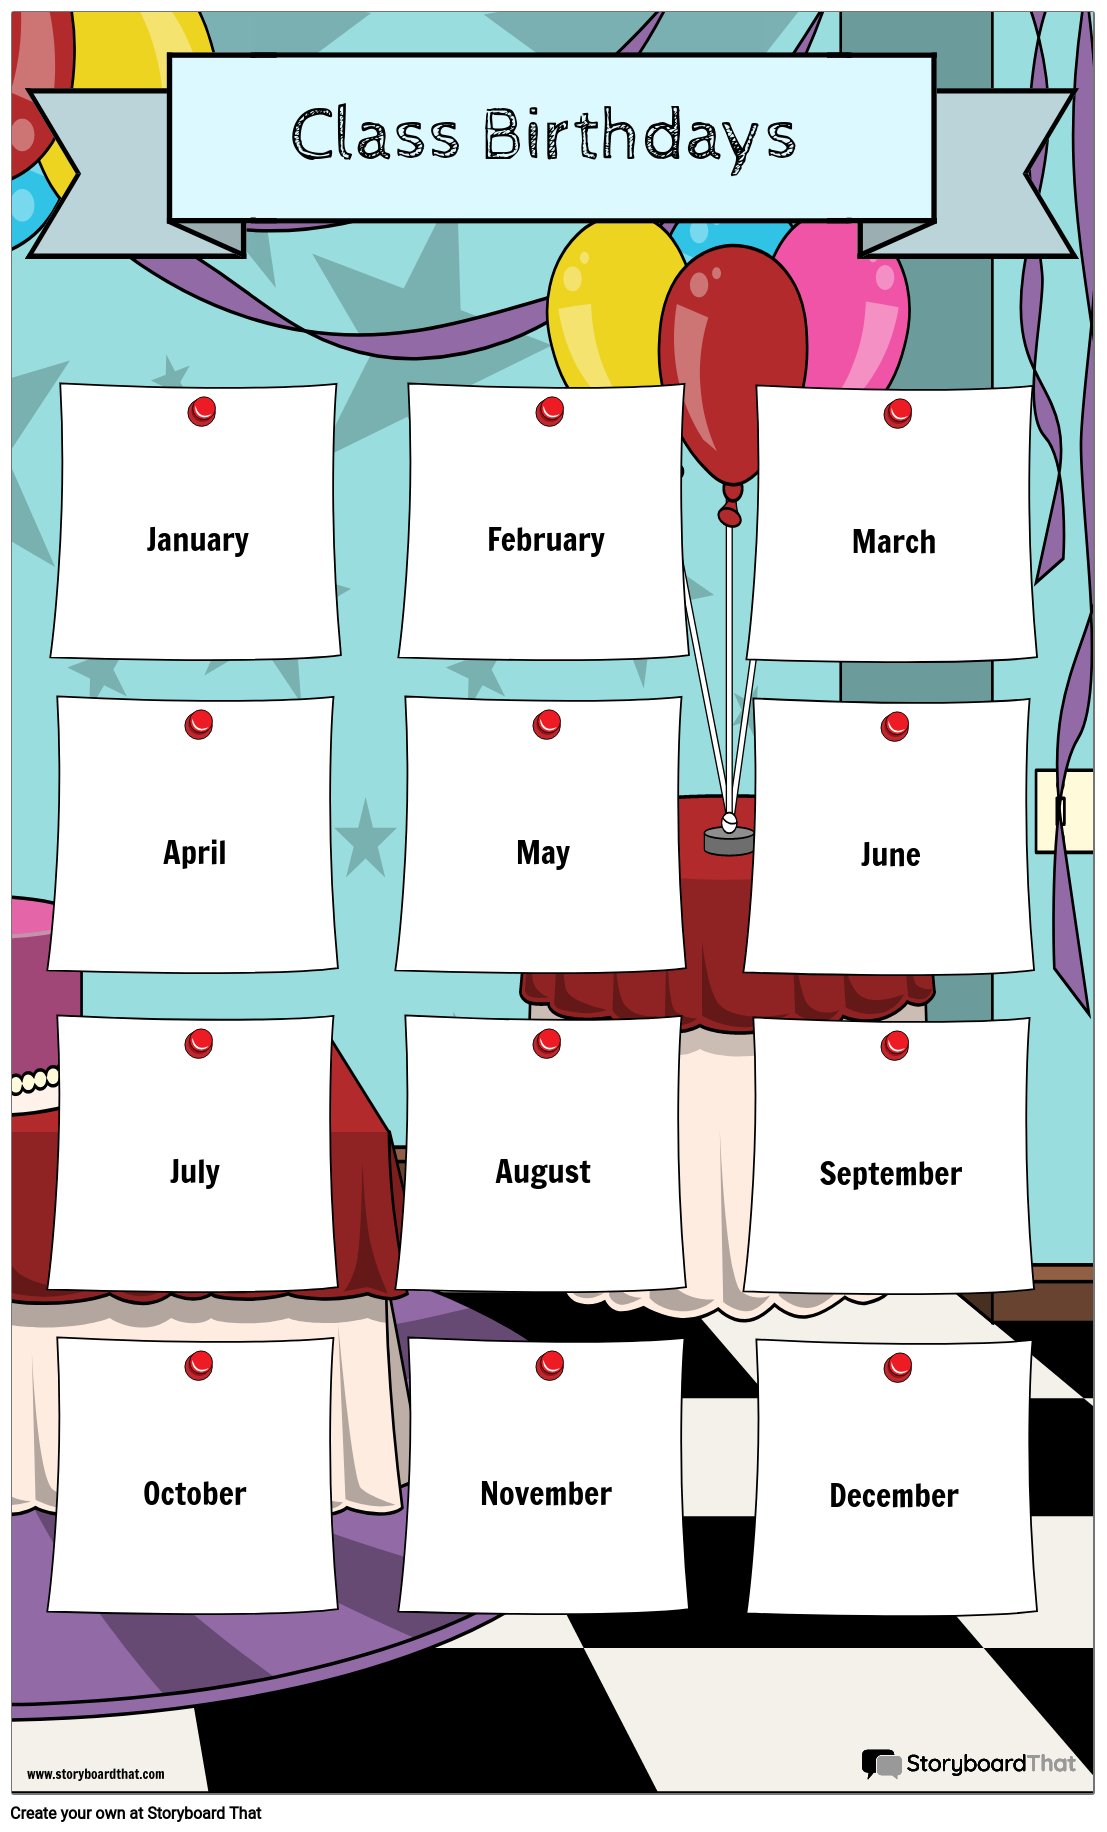 classroom birthday calendar storyboard by poster templates. Black Bedroom Furniture Sets. Home Design Ideas